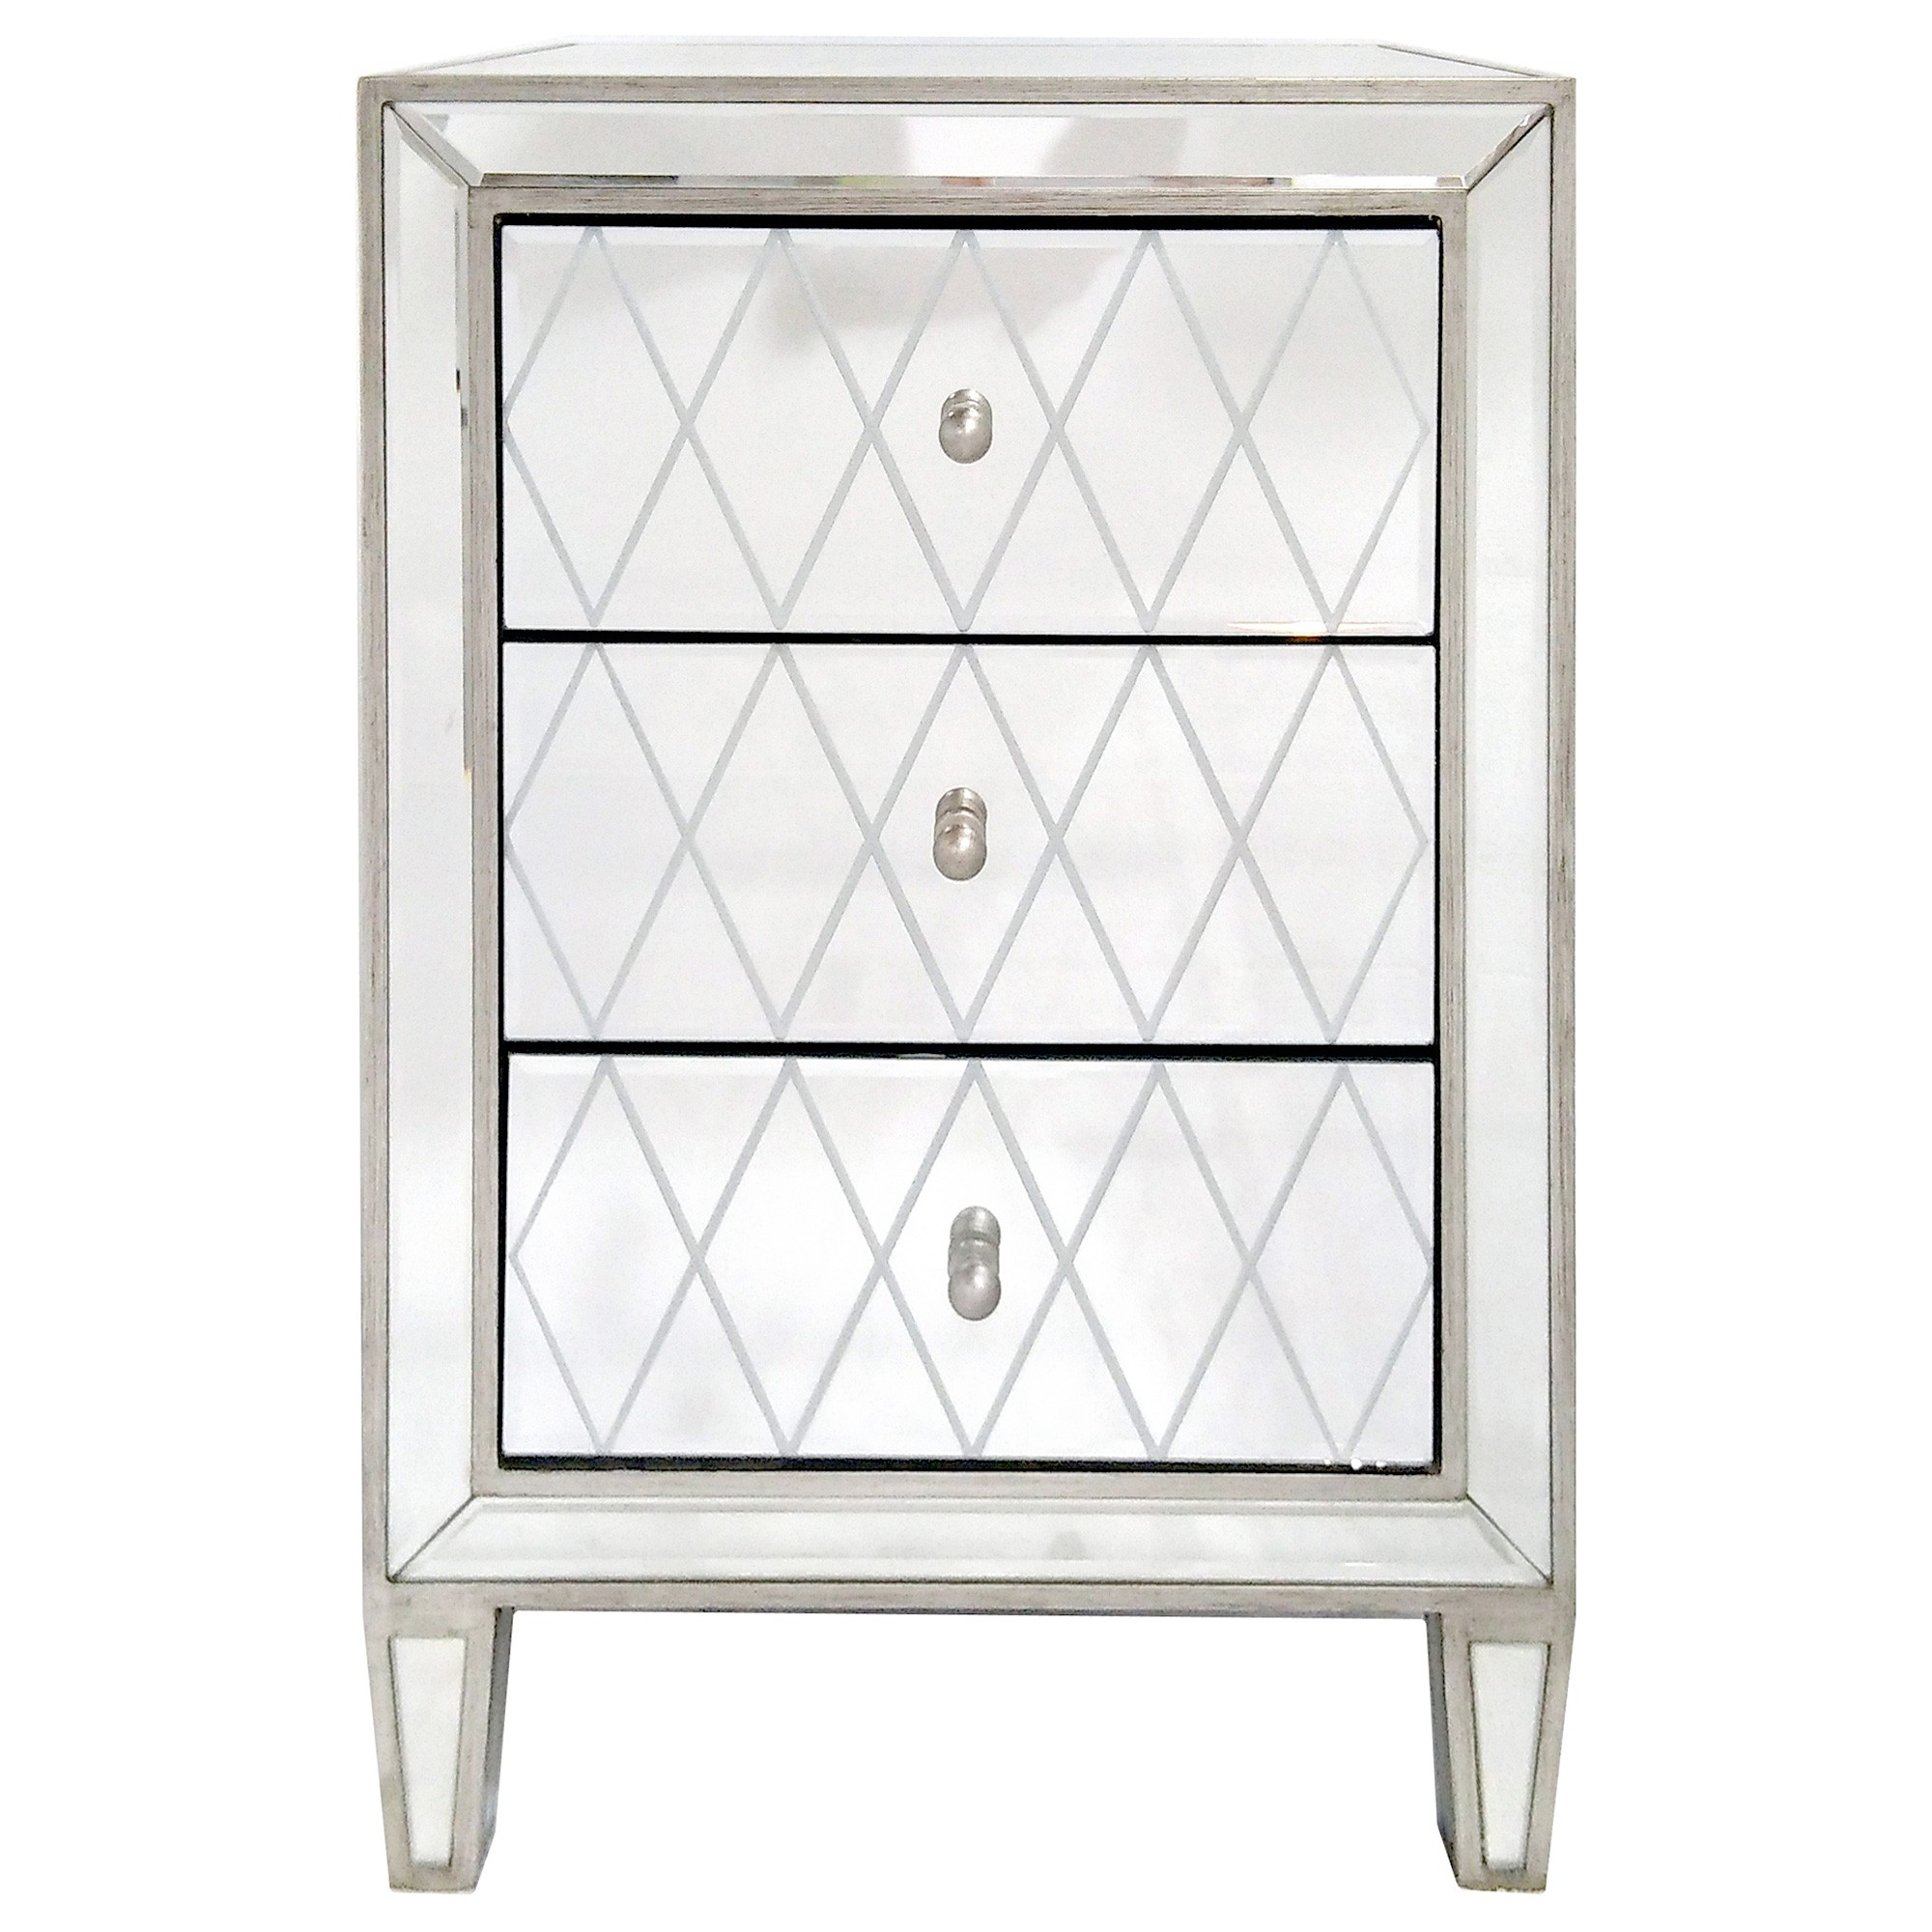 Krystal Mirrored 3 Drawer Bedside Table